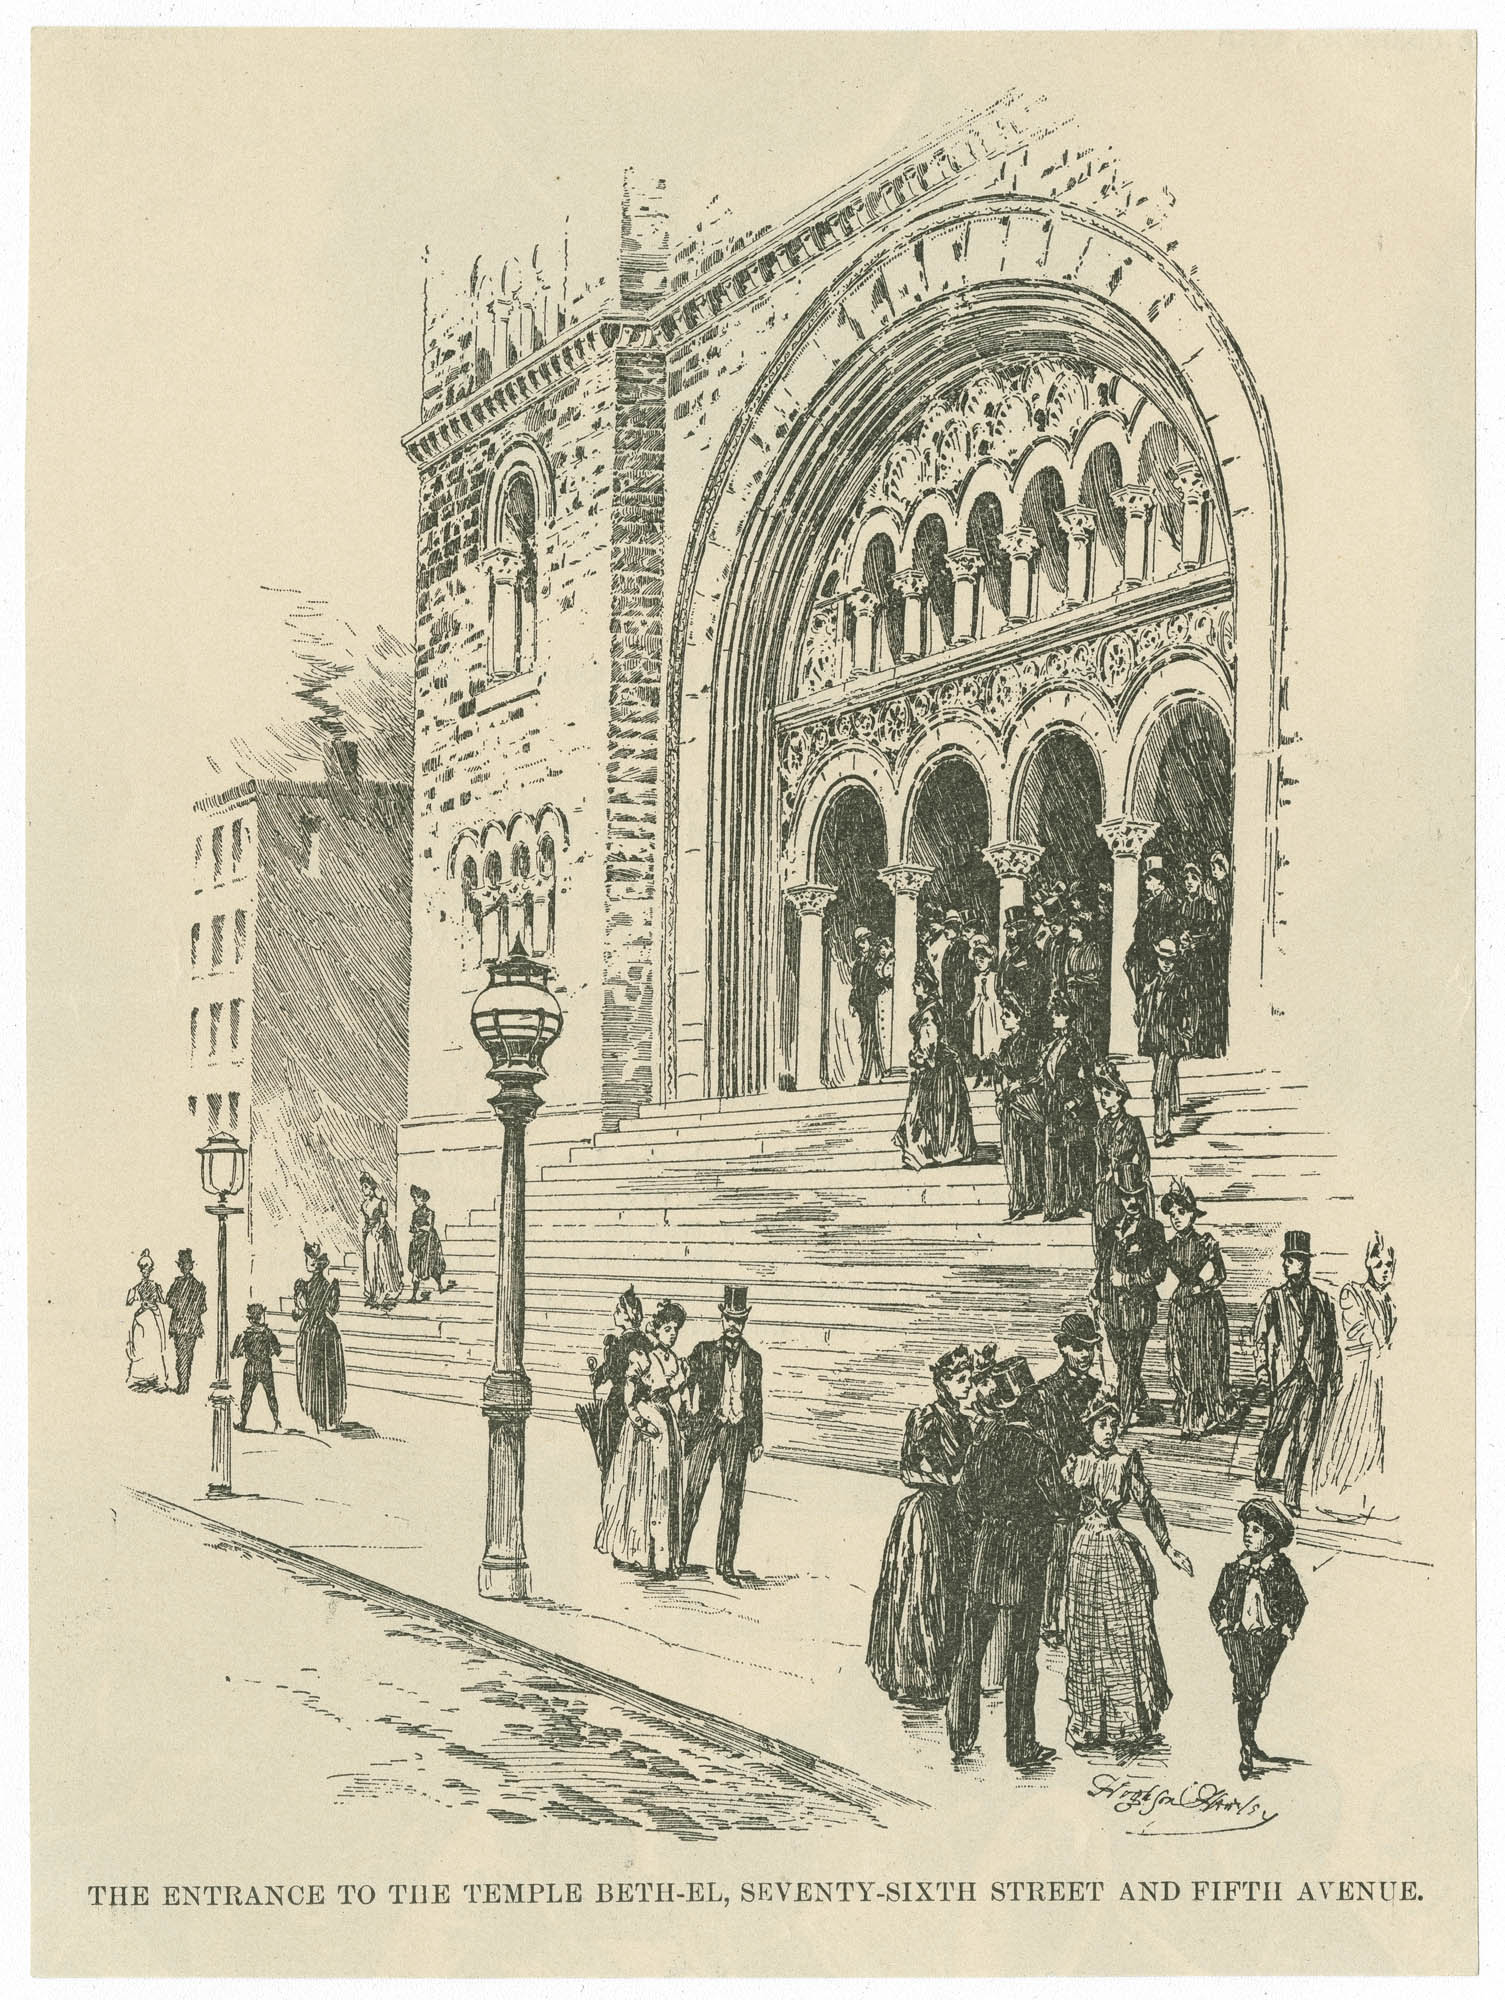 The entrance to the Temple Beth-El, Seventy-Sixth Street and Fifth Avenue